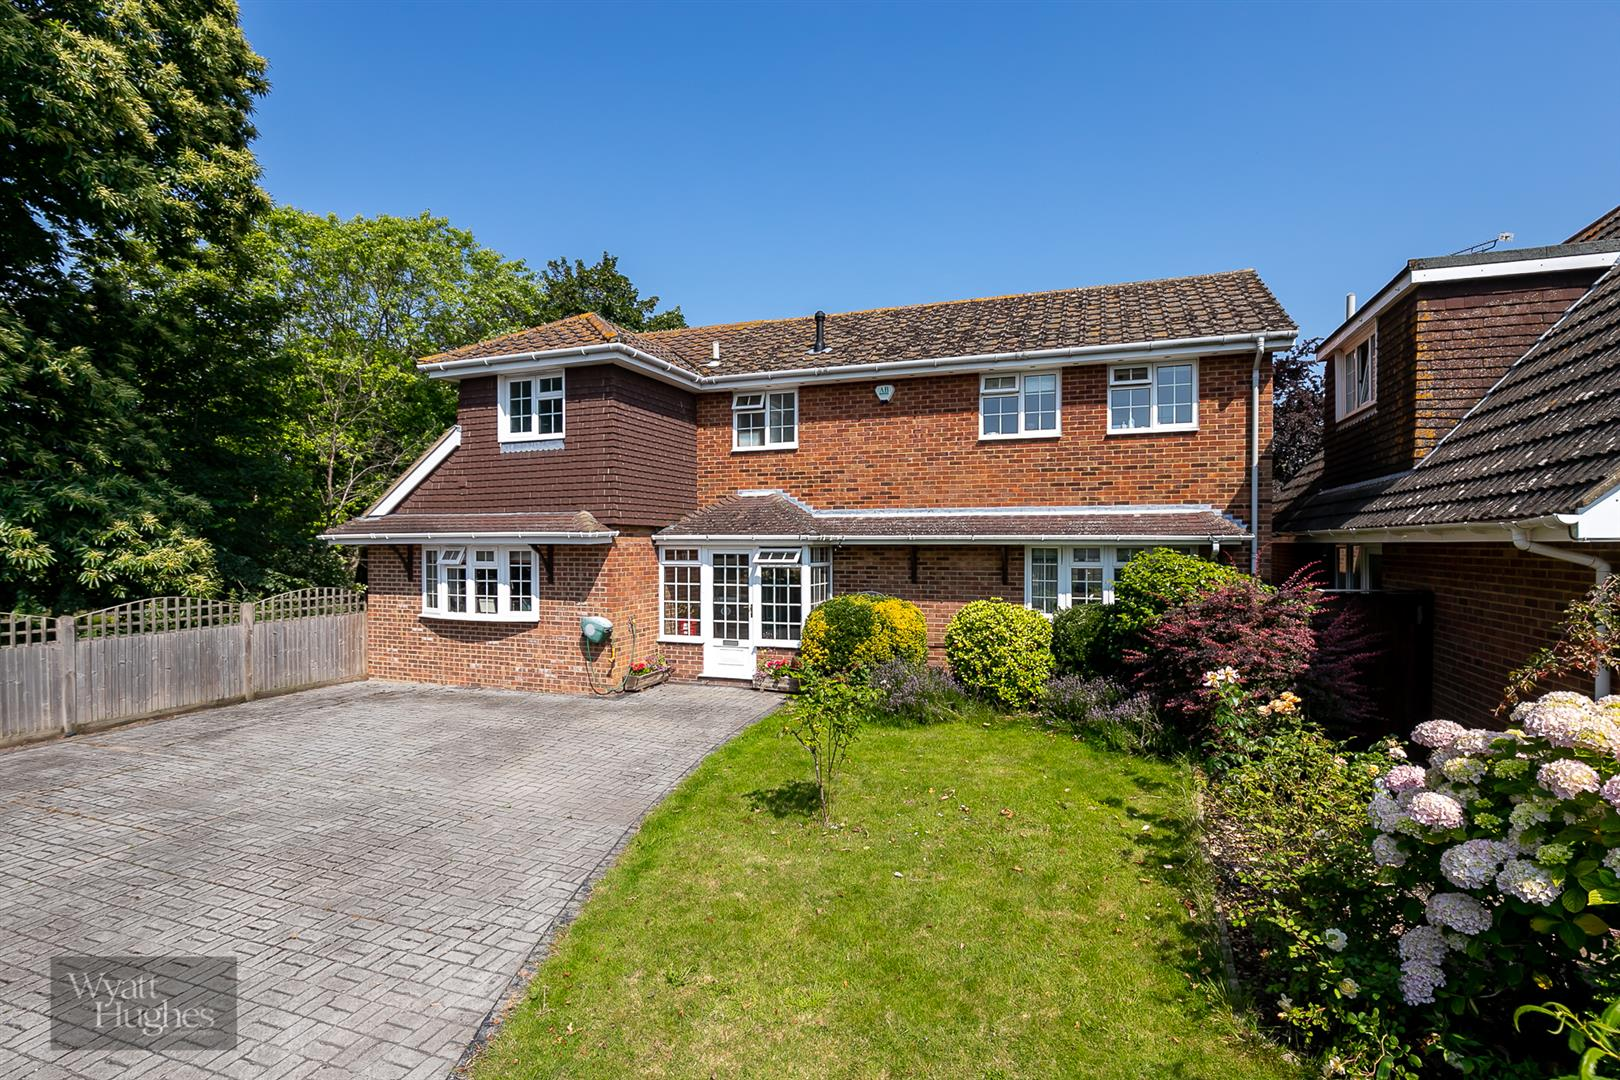 3 bed house for sale in Heighton Close, Bexhill-On-Sea, TN39